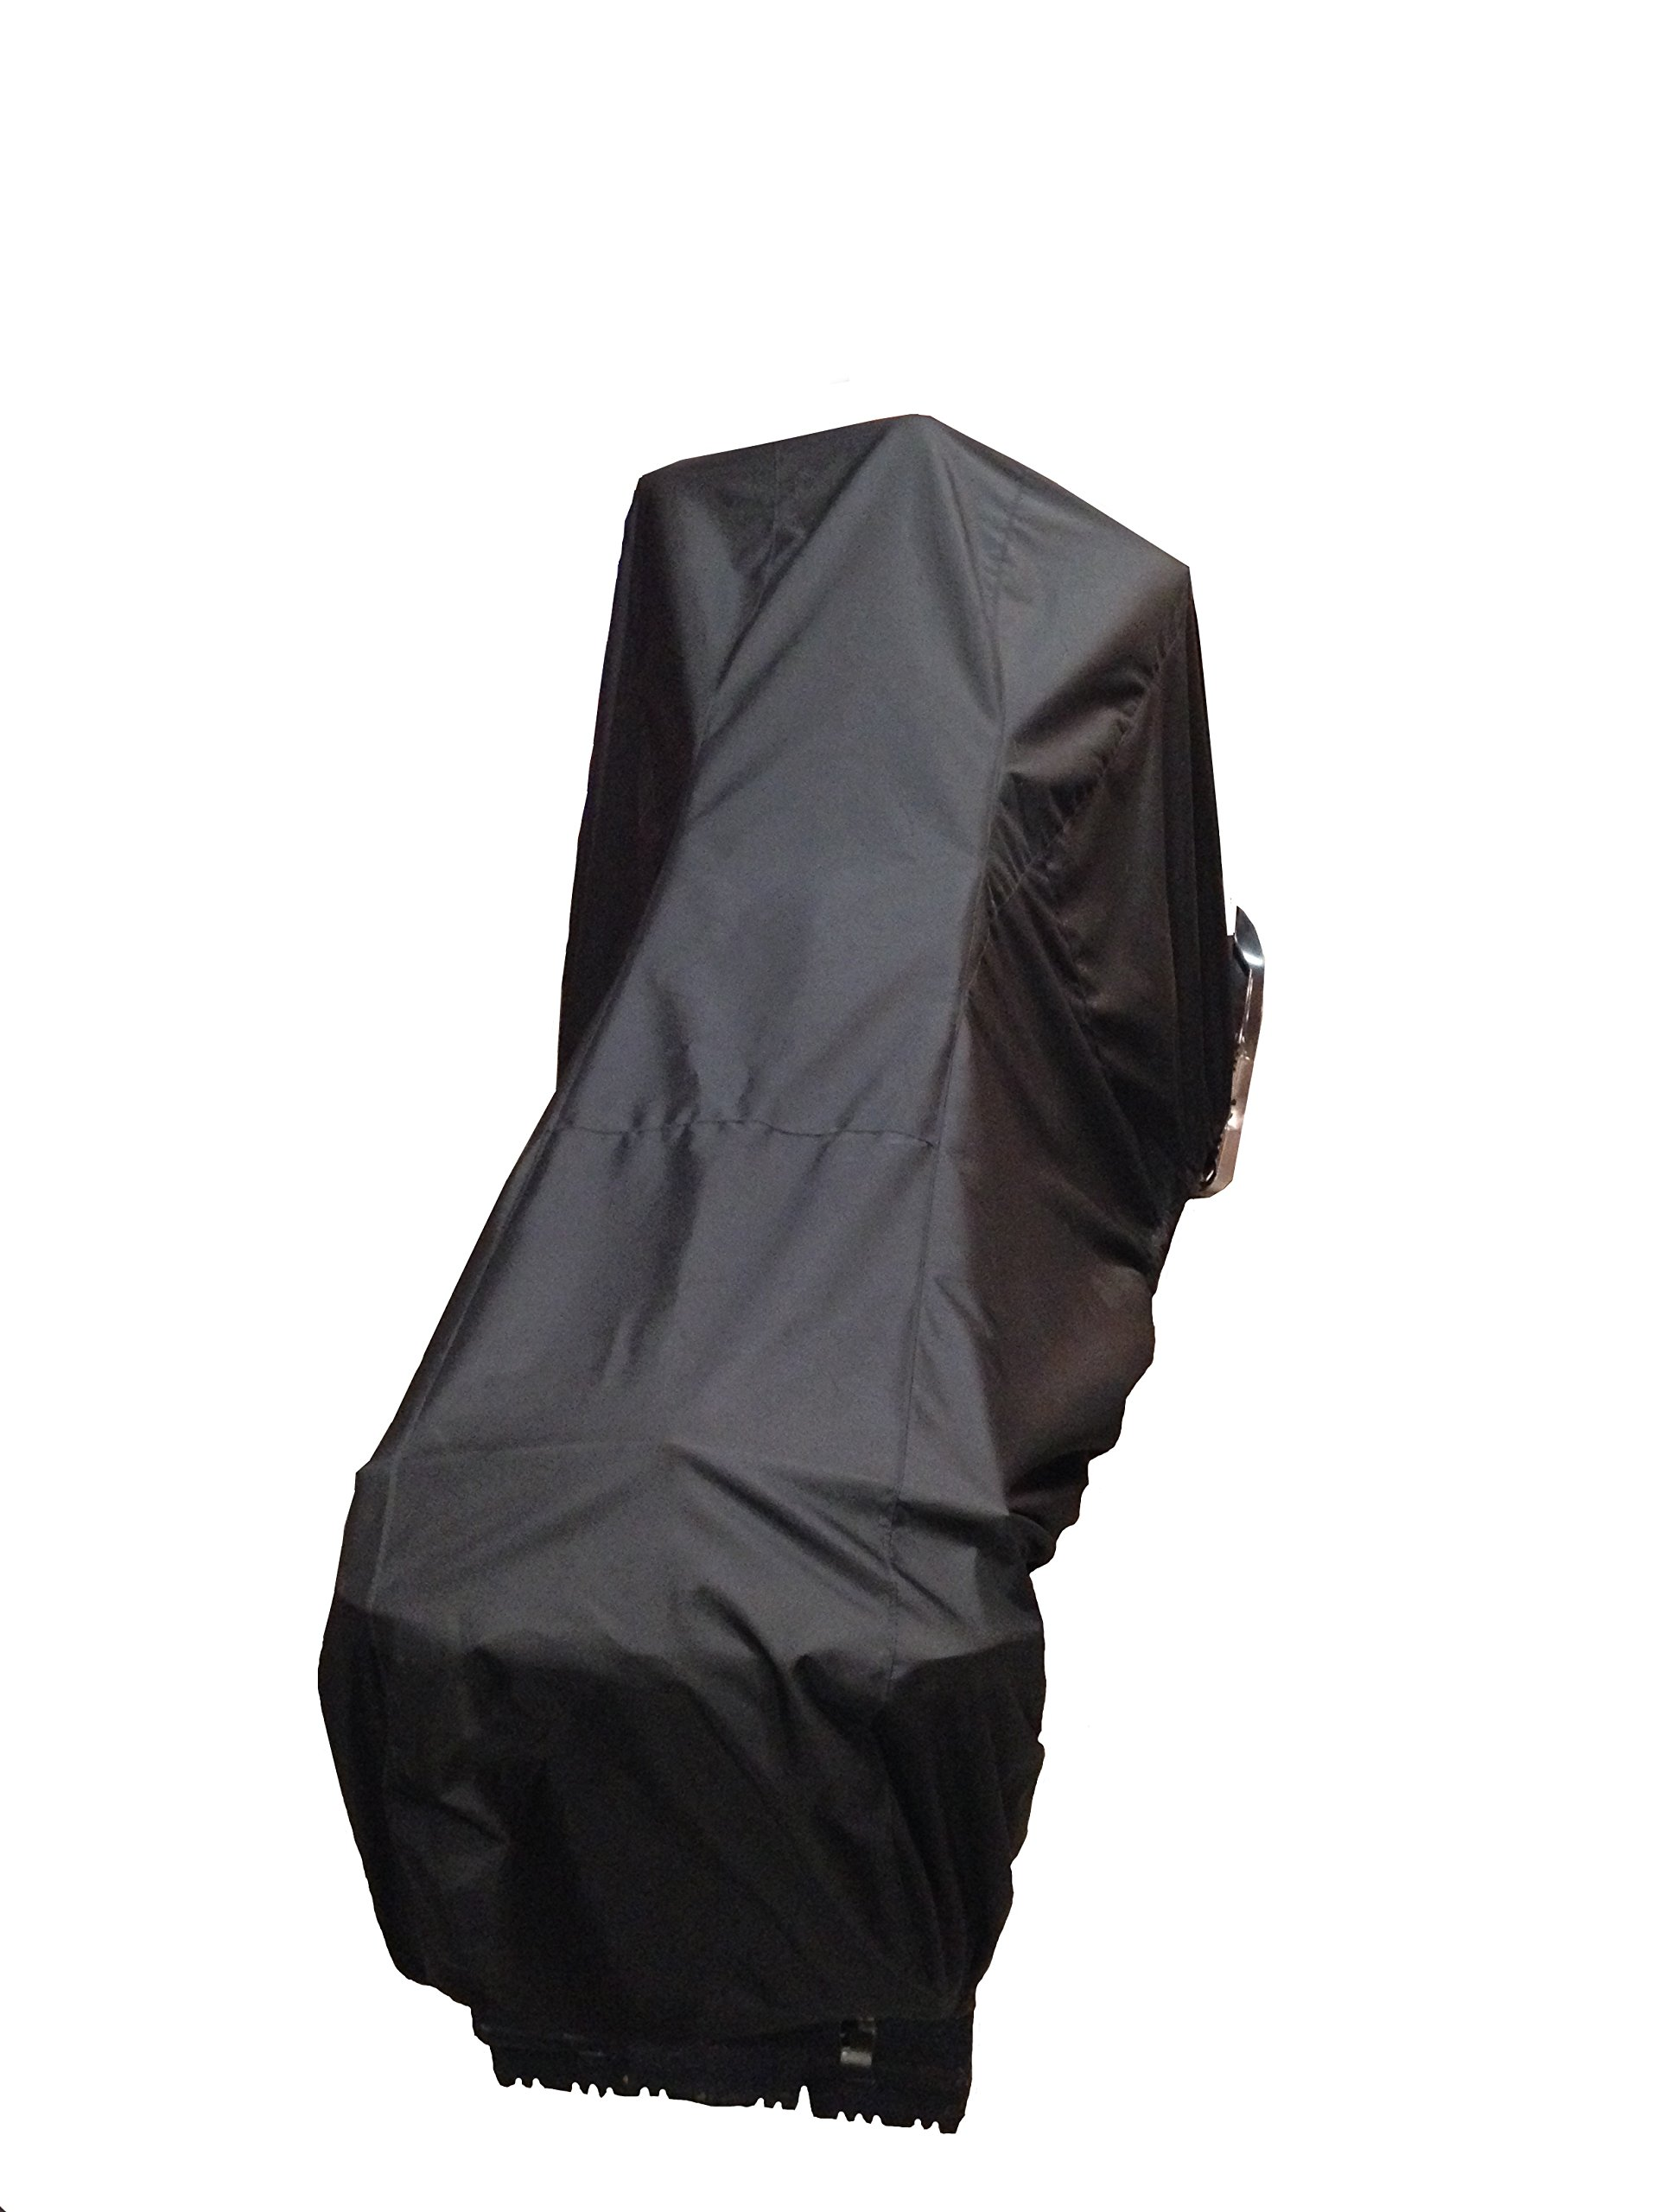 Snowmobile Cover 105'' - 125'' - Sunbrella by NorthStar (Image #3)